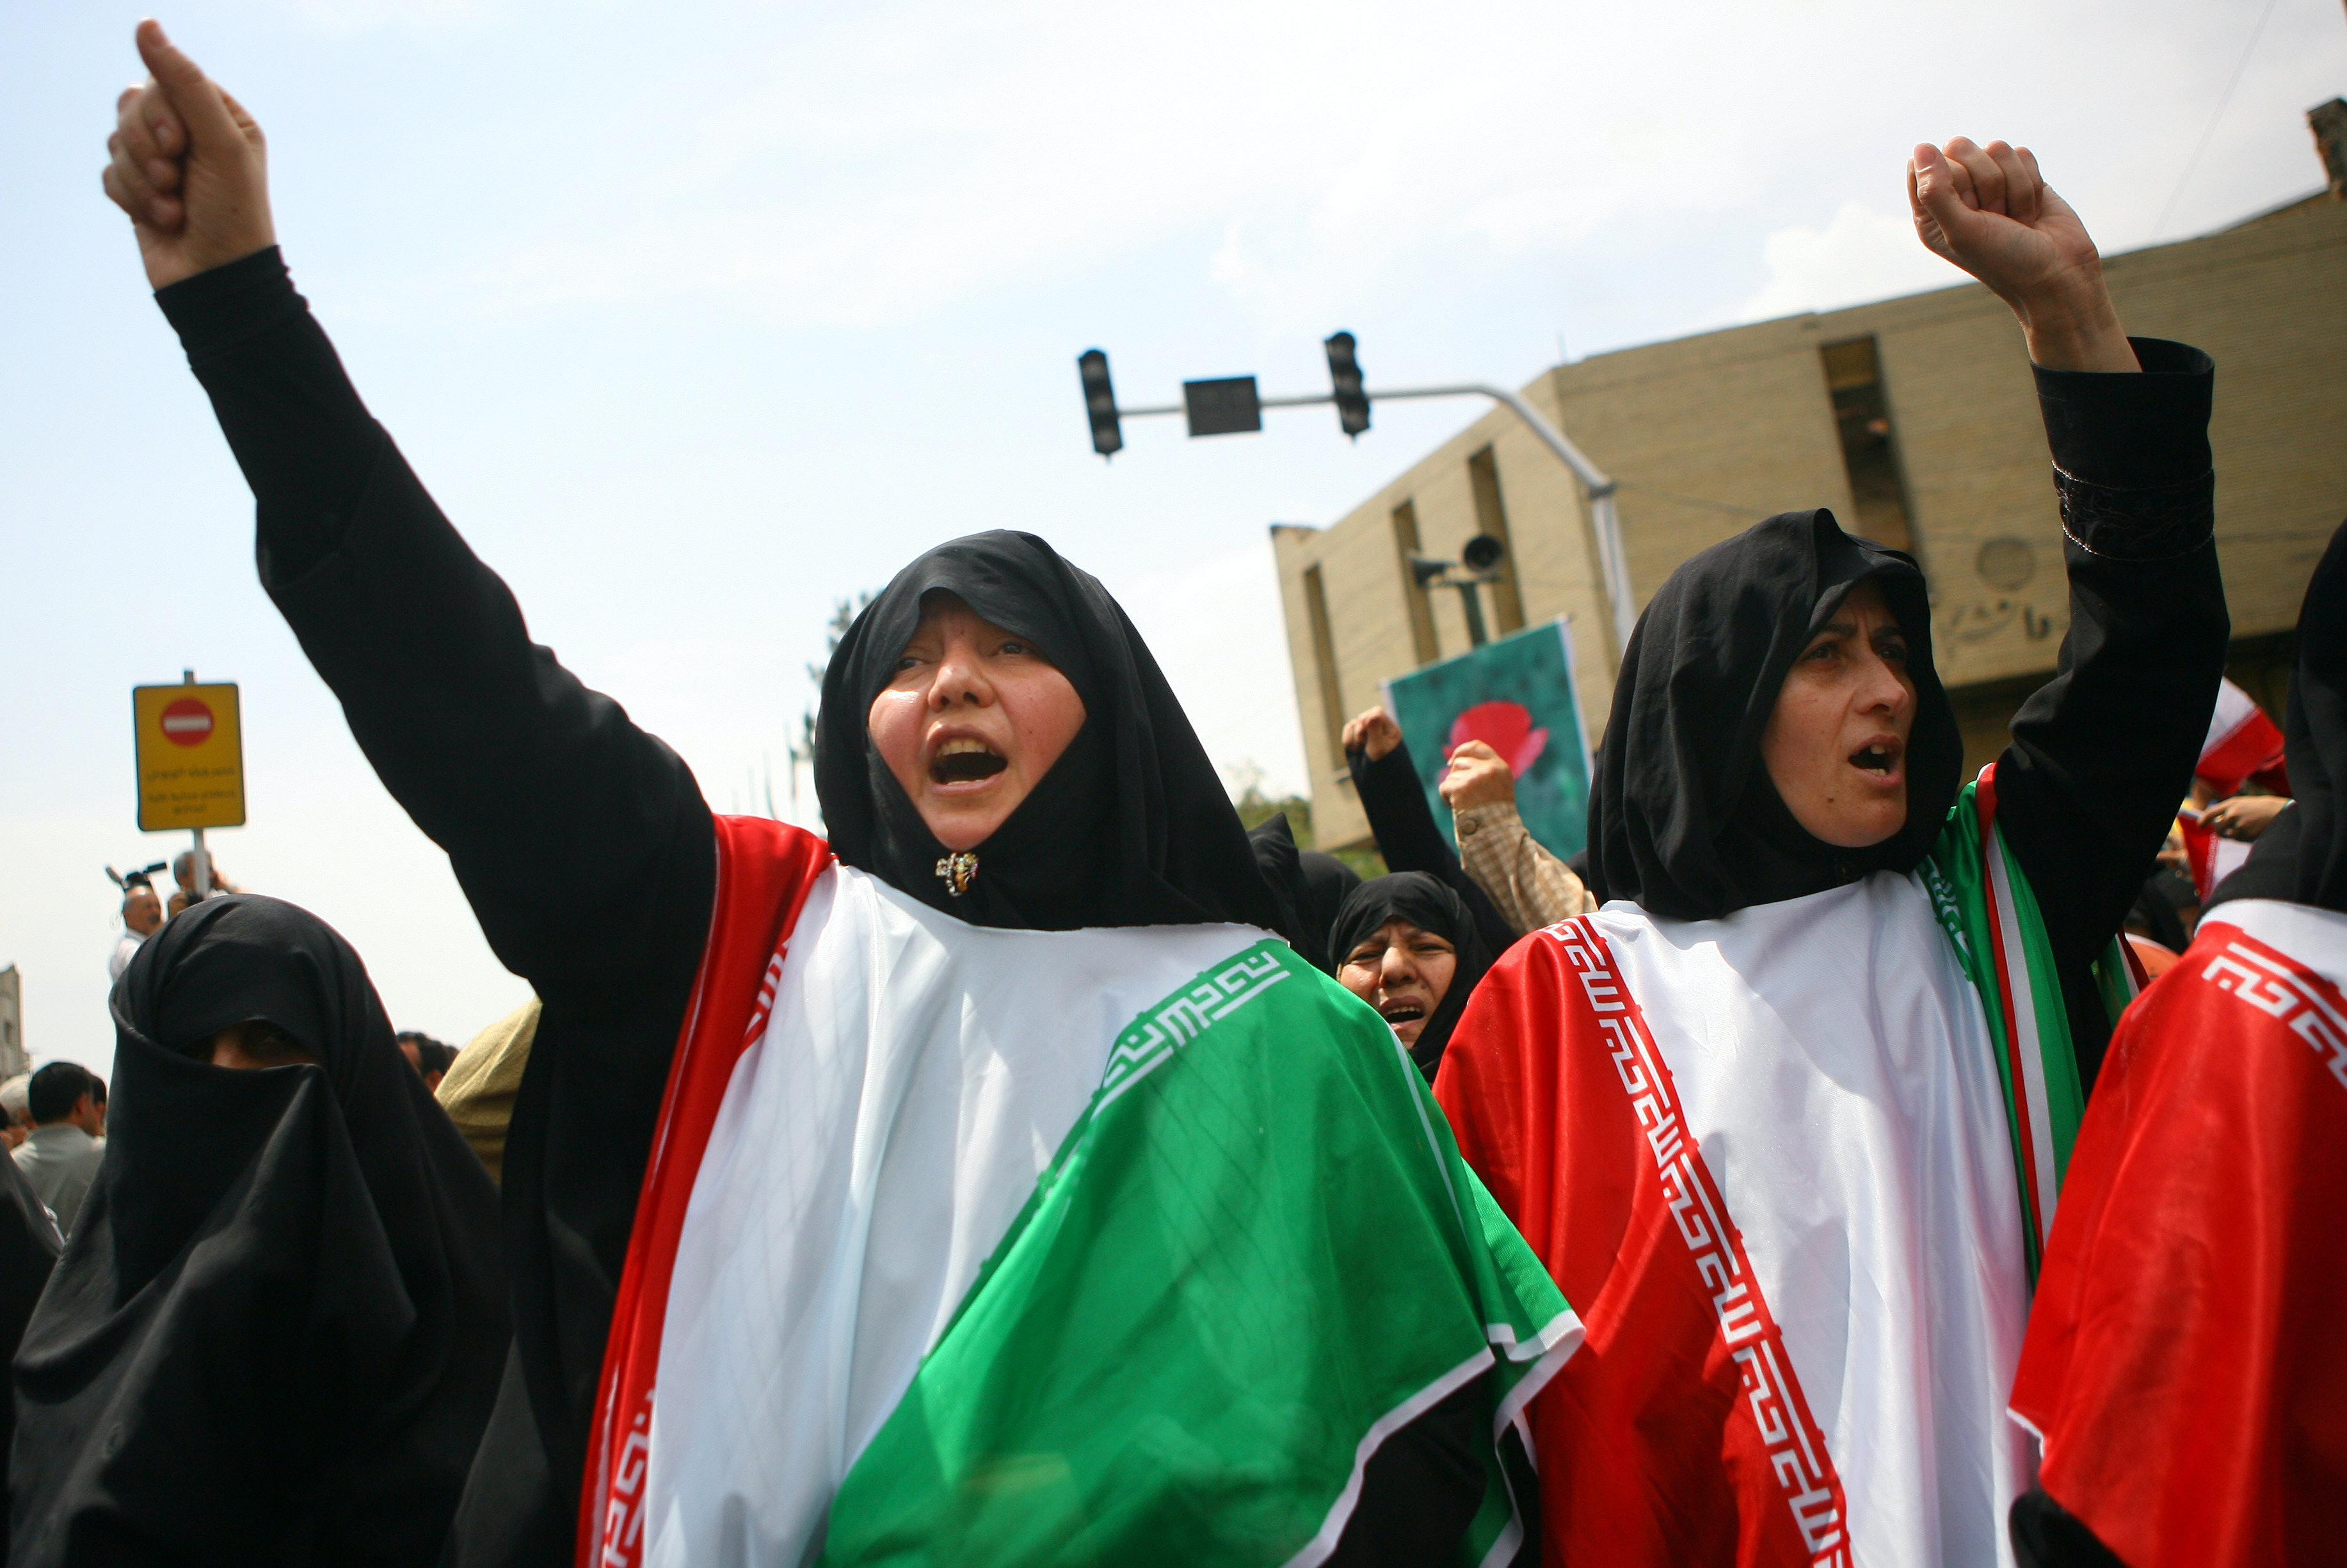 What is happening in Iran (photo) 9